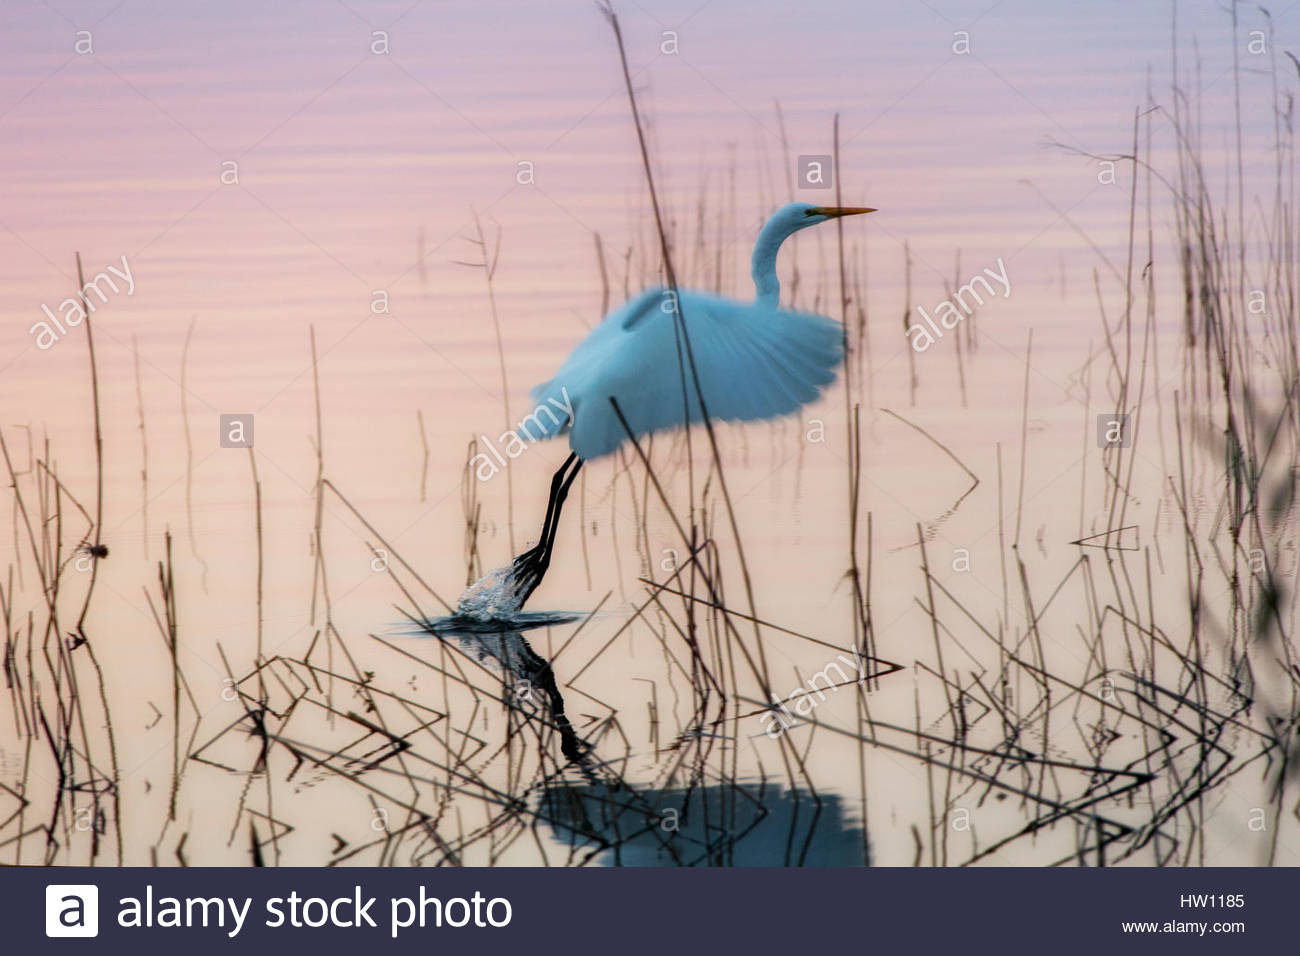 The great egret, Ardea alba, hops out of the water with a gentle flap of its wings. - Stock Image